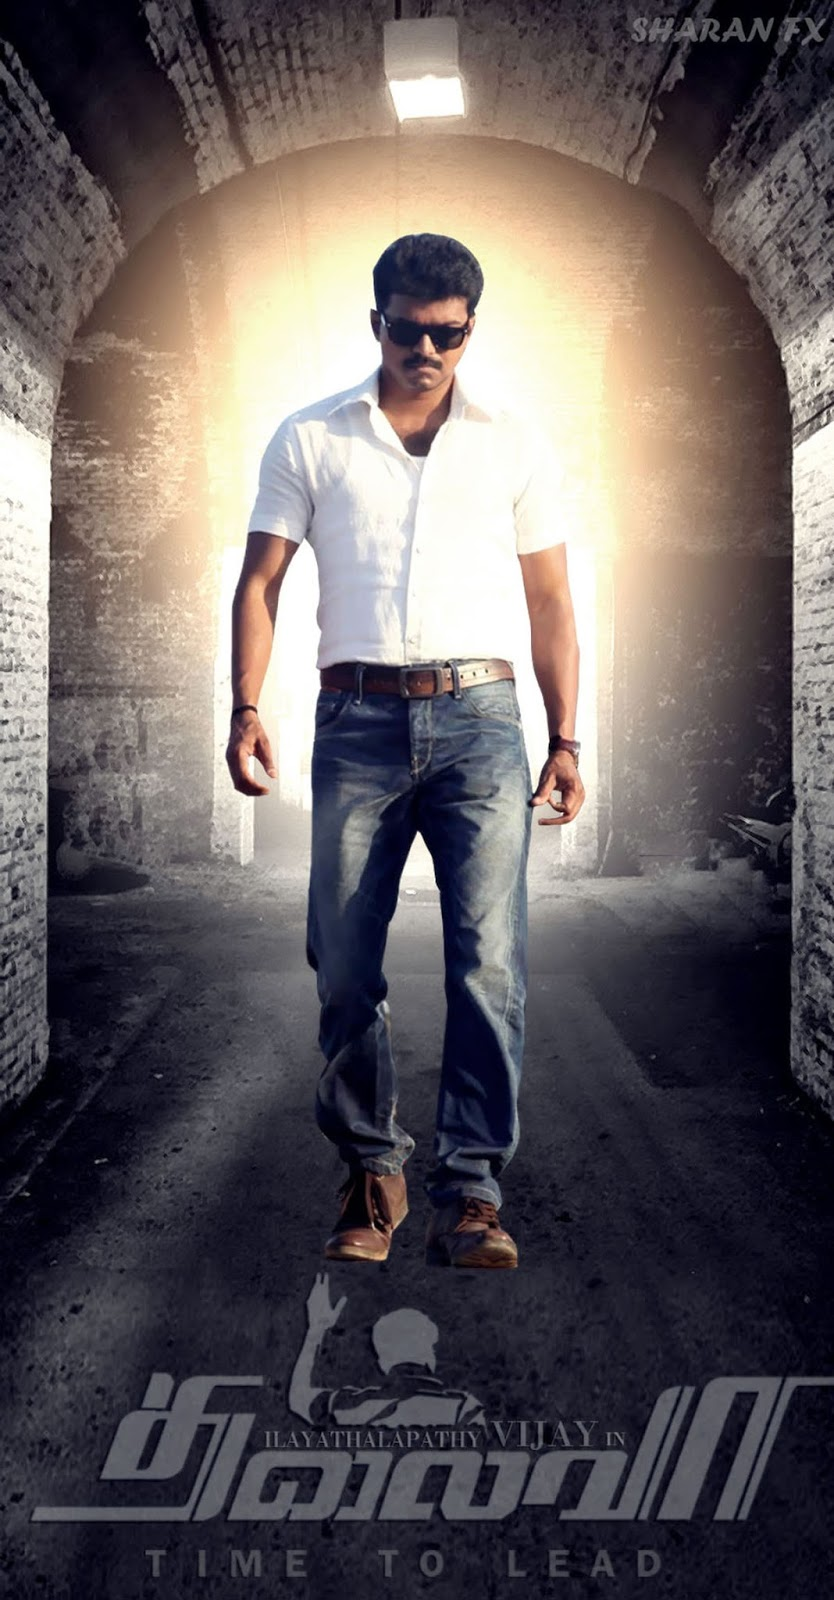 WELCOME TO ILAYATHALAPATHYVIJAYTHEKING.BLOGSPOT.COM: Vijay